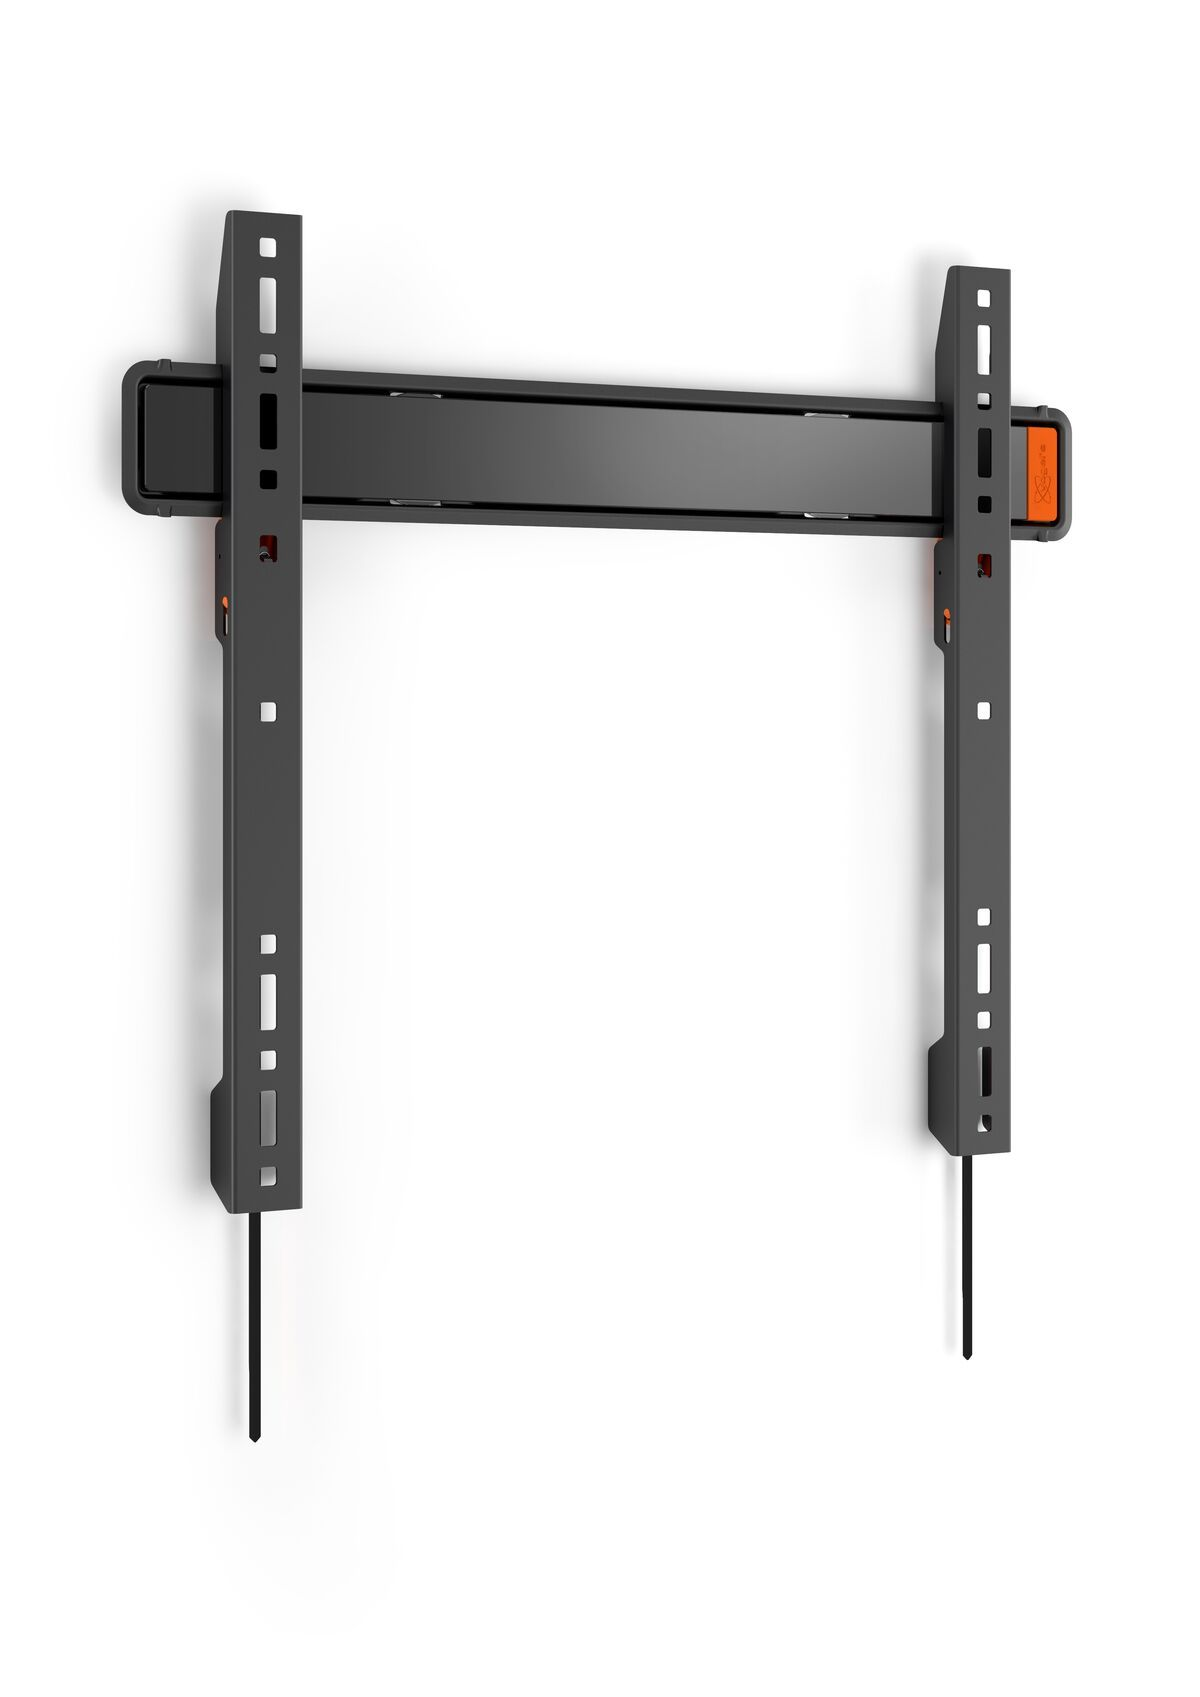 Vogel's WALL 3205 Fixed TV Wall Mount - Suitable for 32 up to 55 inch TVs up to 50 kg - Product